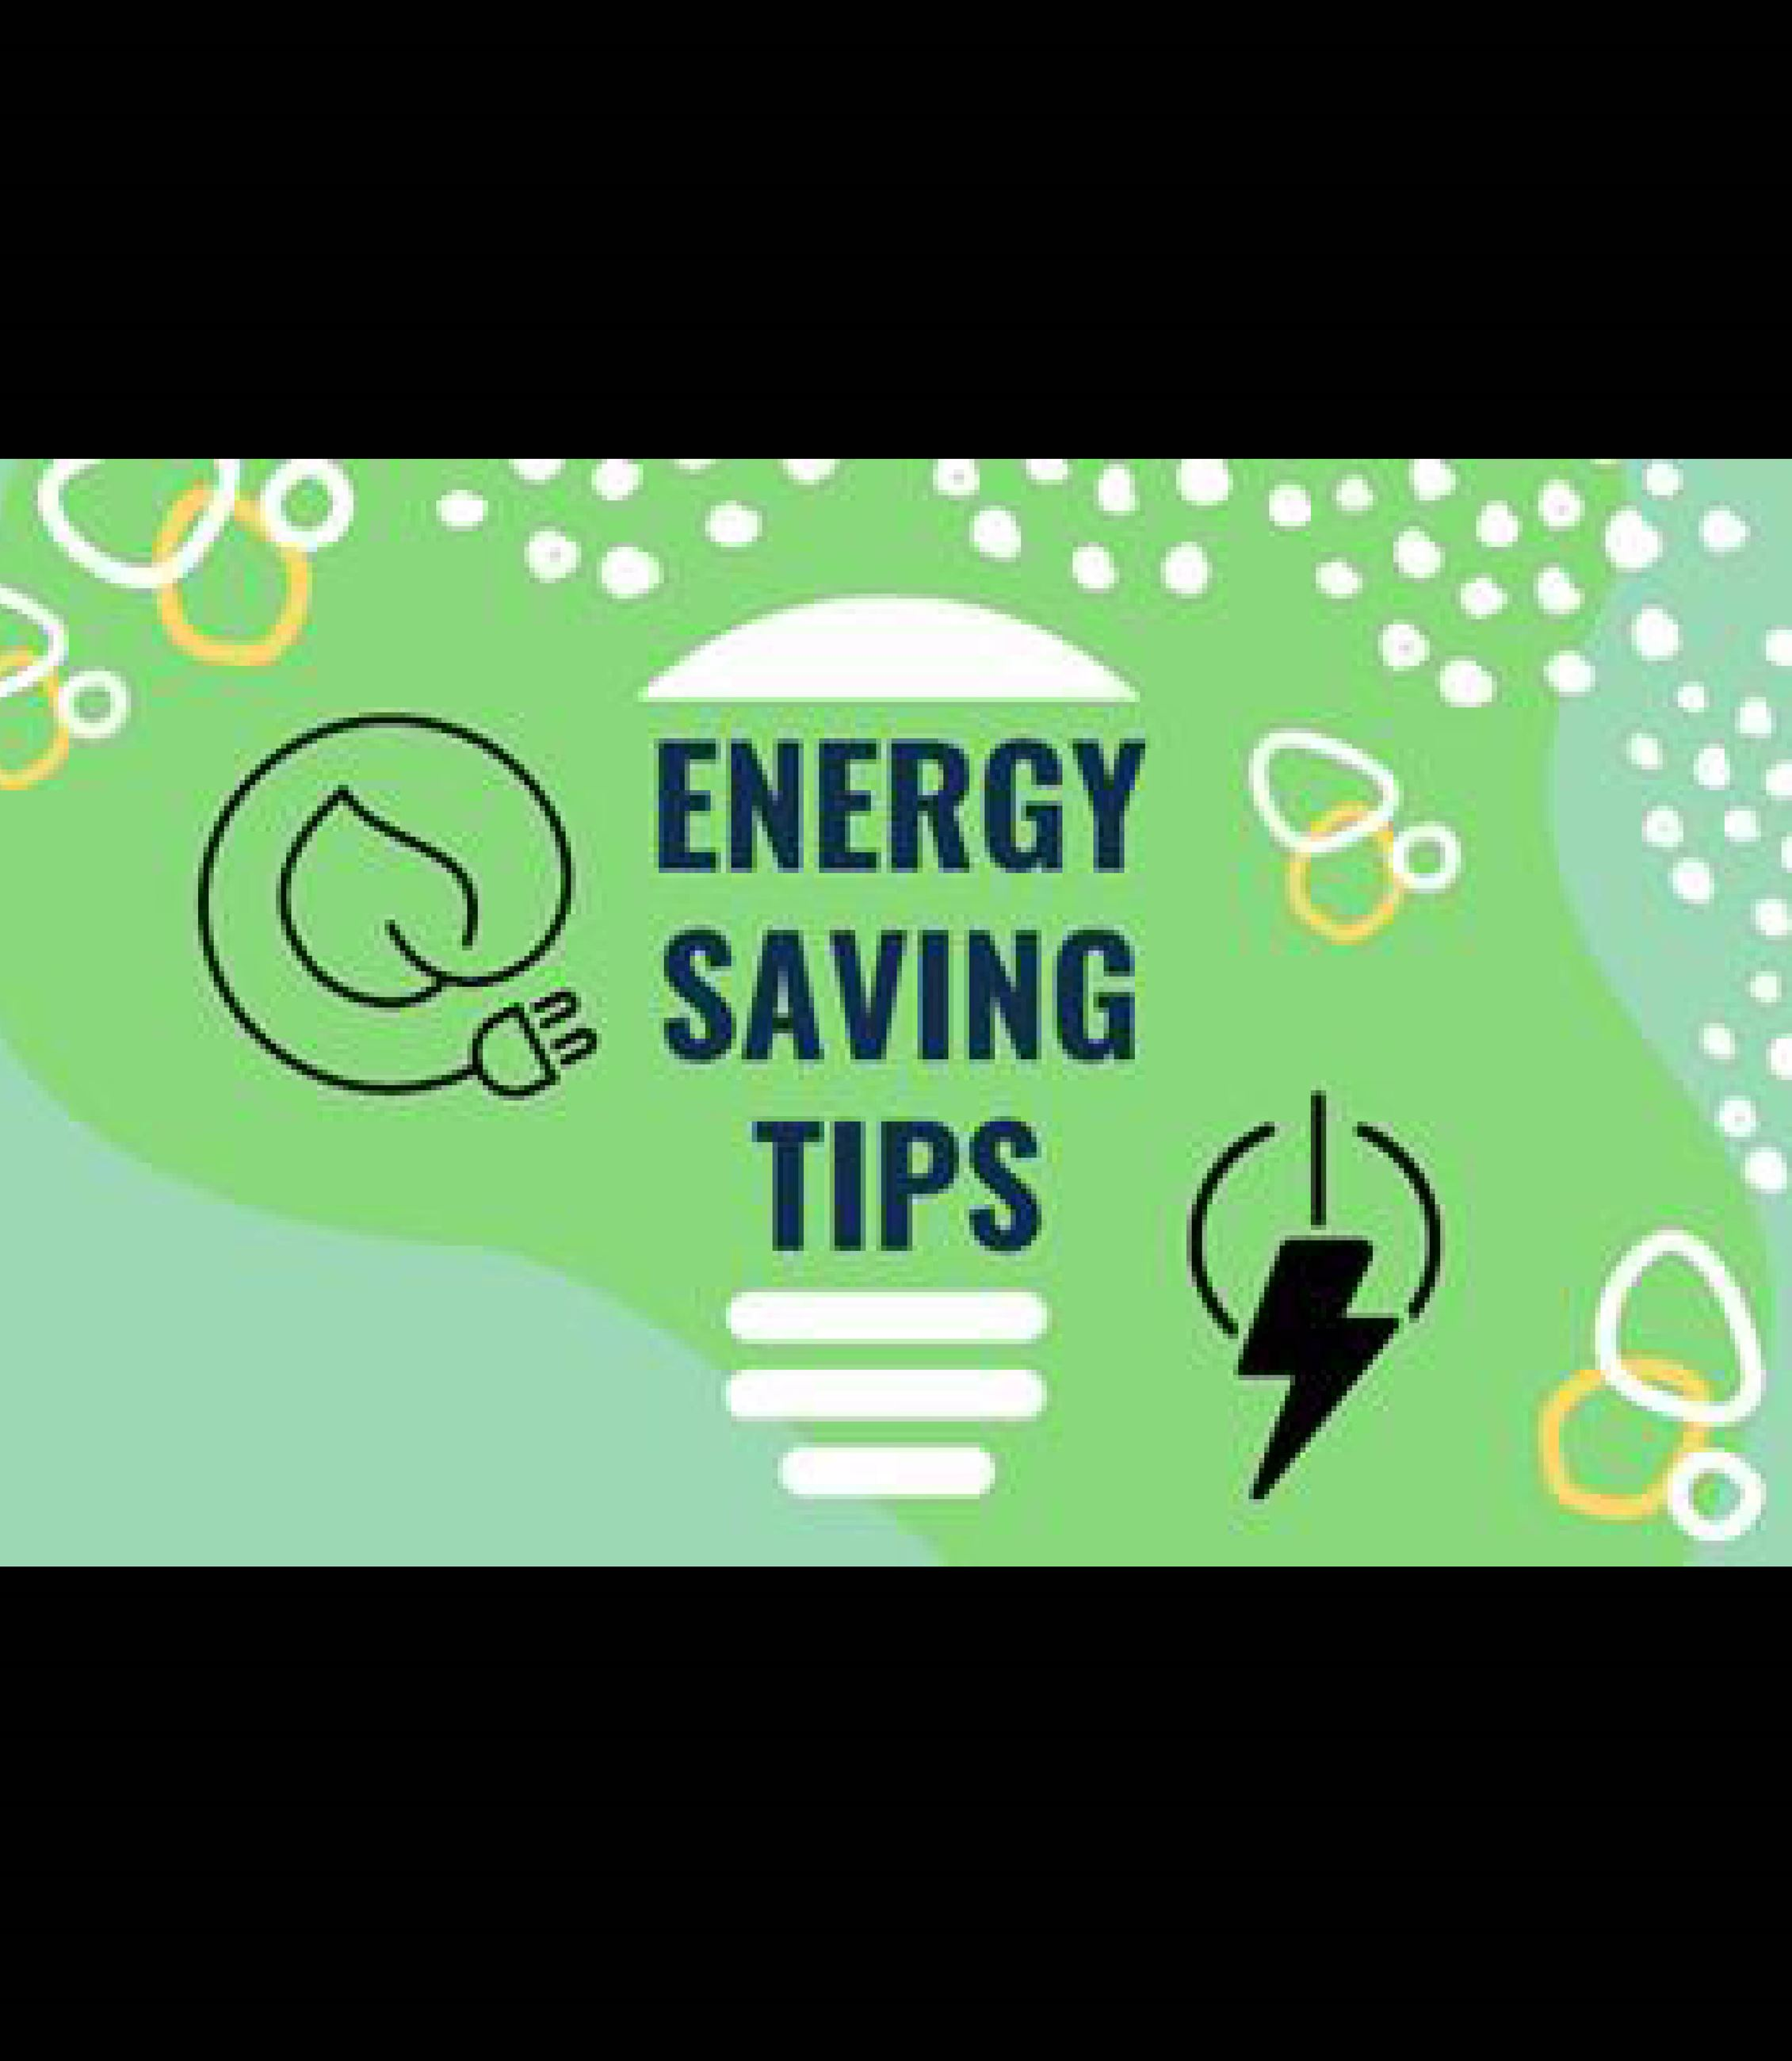 Energy saving tips newsflash11